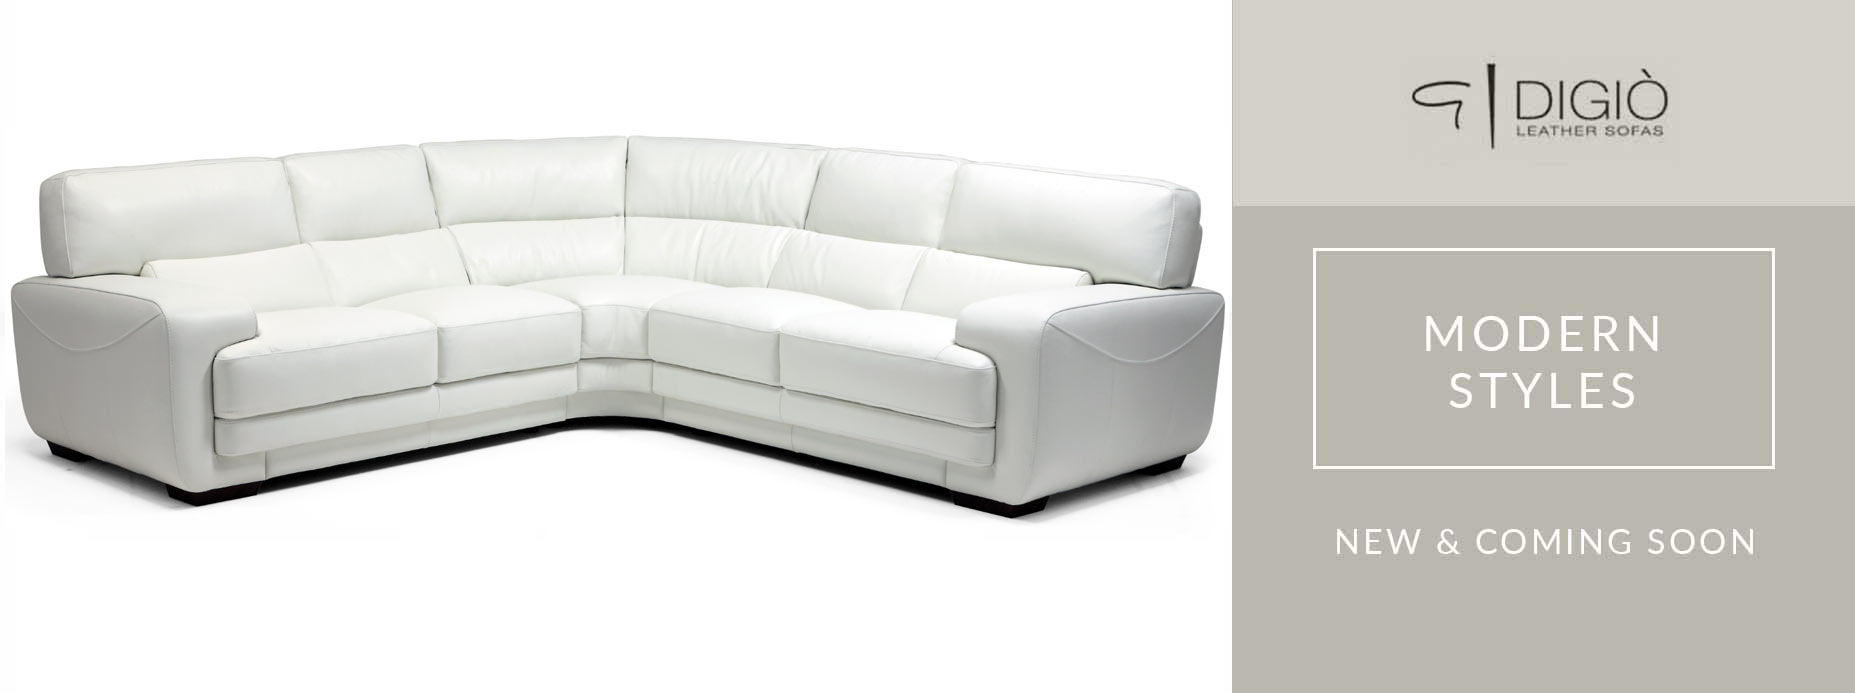 Digio Leather Sectional